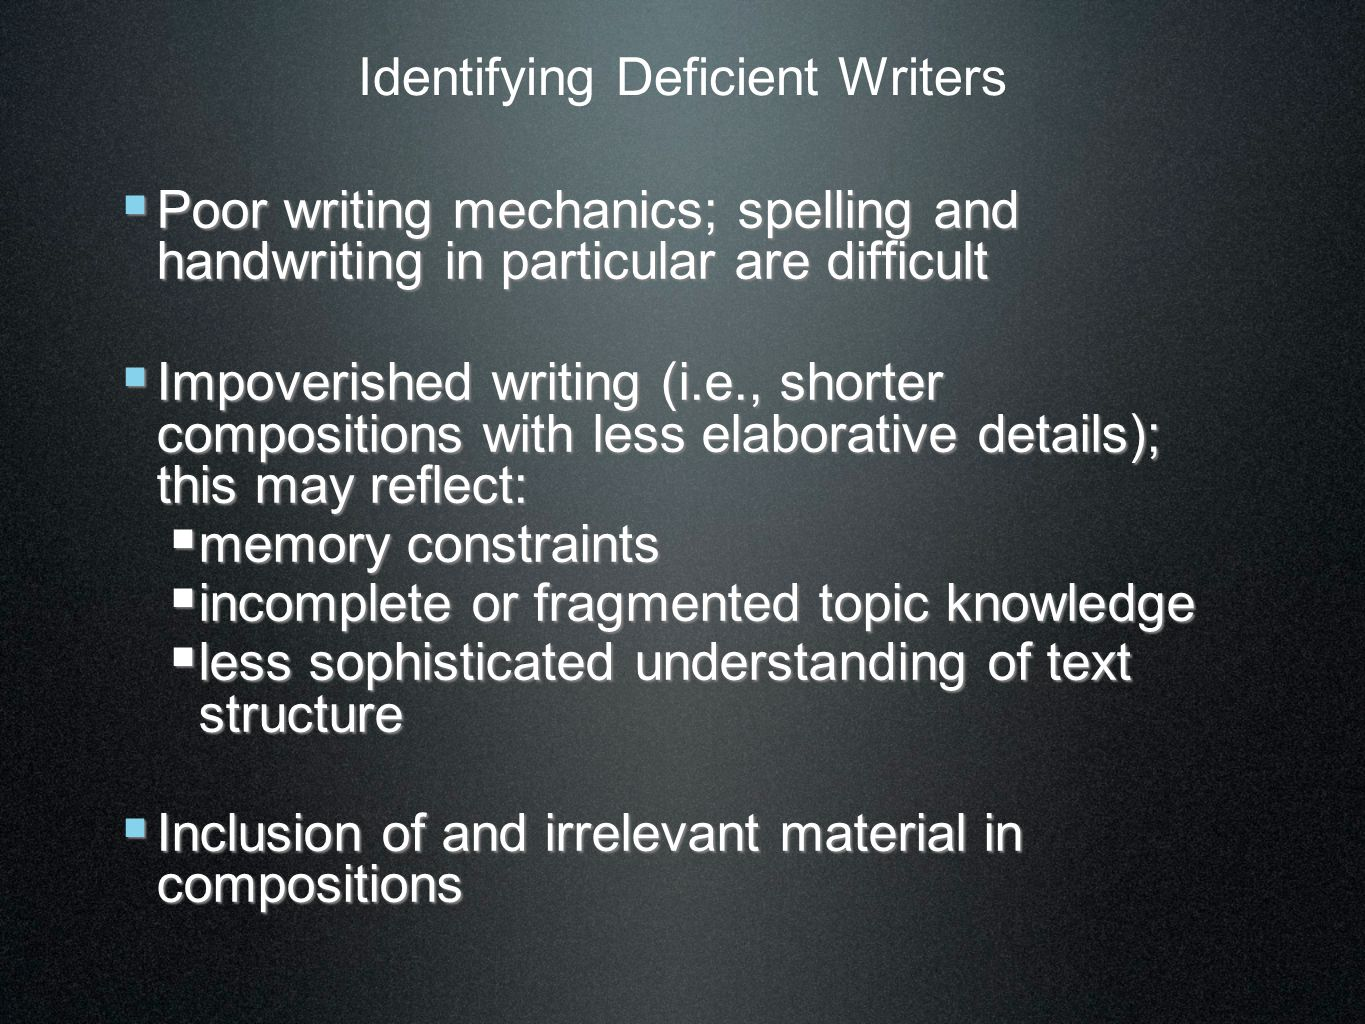 Identifying Deficient Writers  Poor writing mechanics; spelling and handwriting in particular are difficult  Impoverished writing (i.e., shorter compositions with less elaborative details); this may reflect:  memory constraints  incomplete or fragmented topic knowledge  less sophisticated understanding of text structure  Inclusion of and irrelevant material in compositions